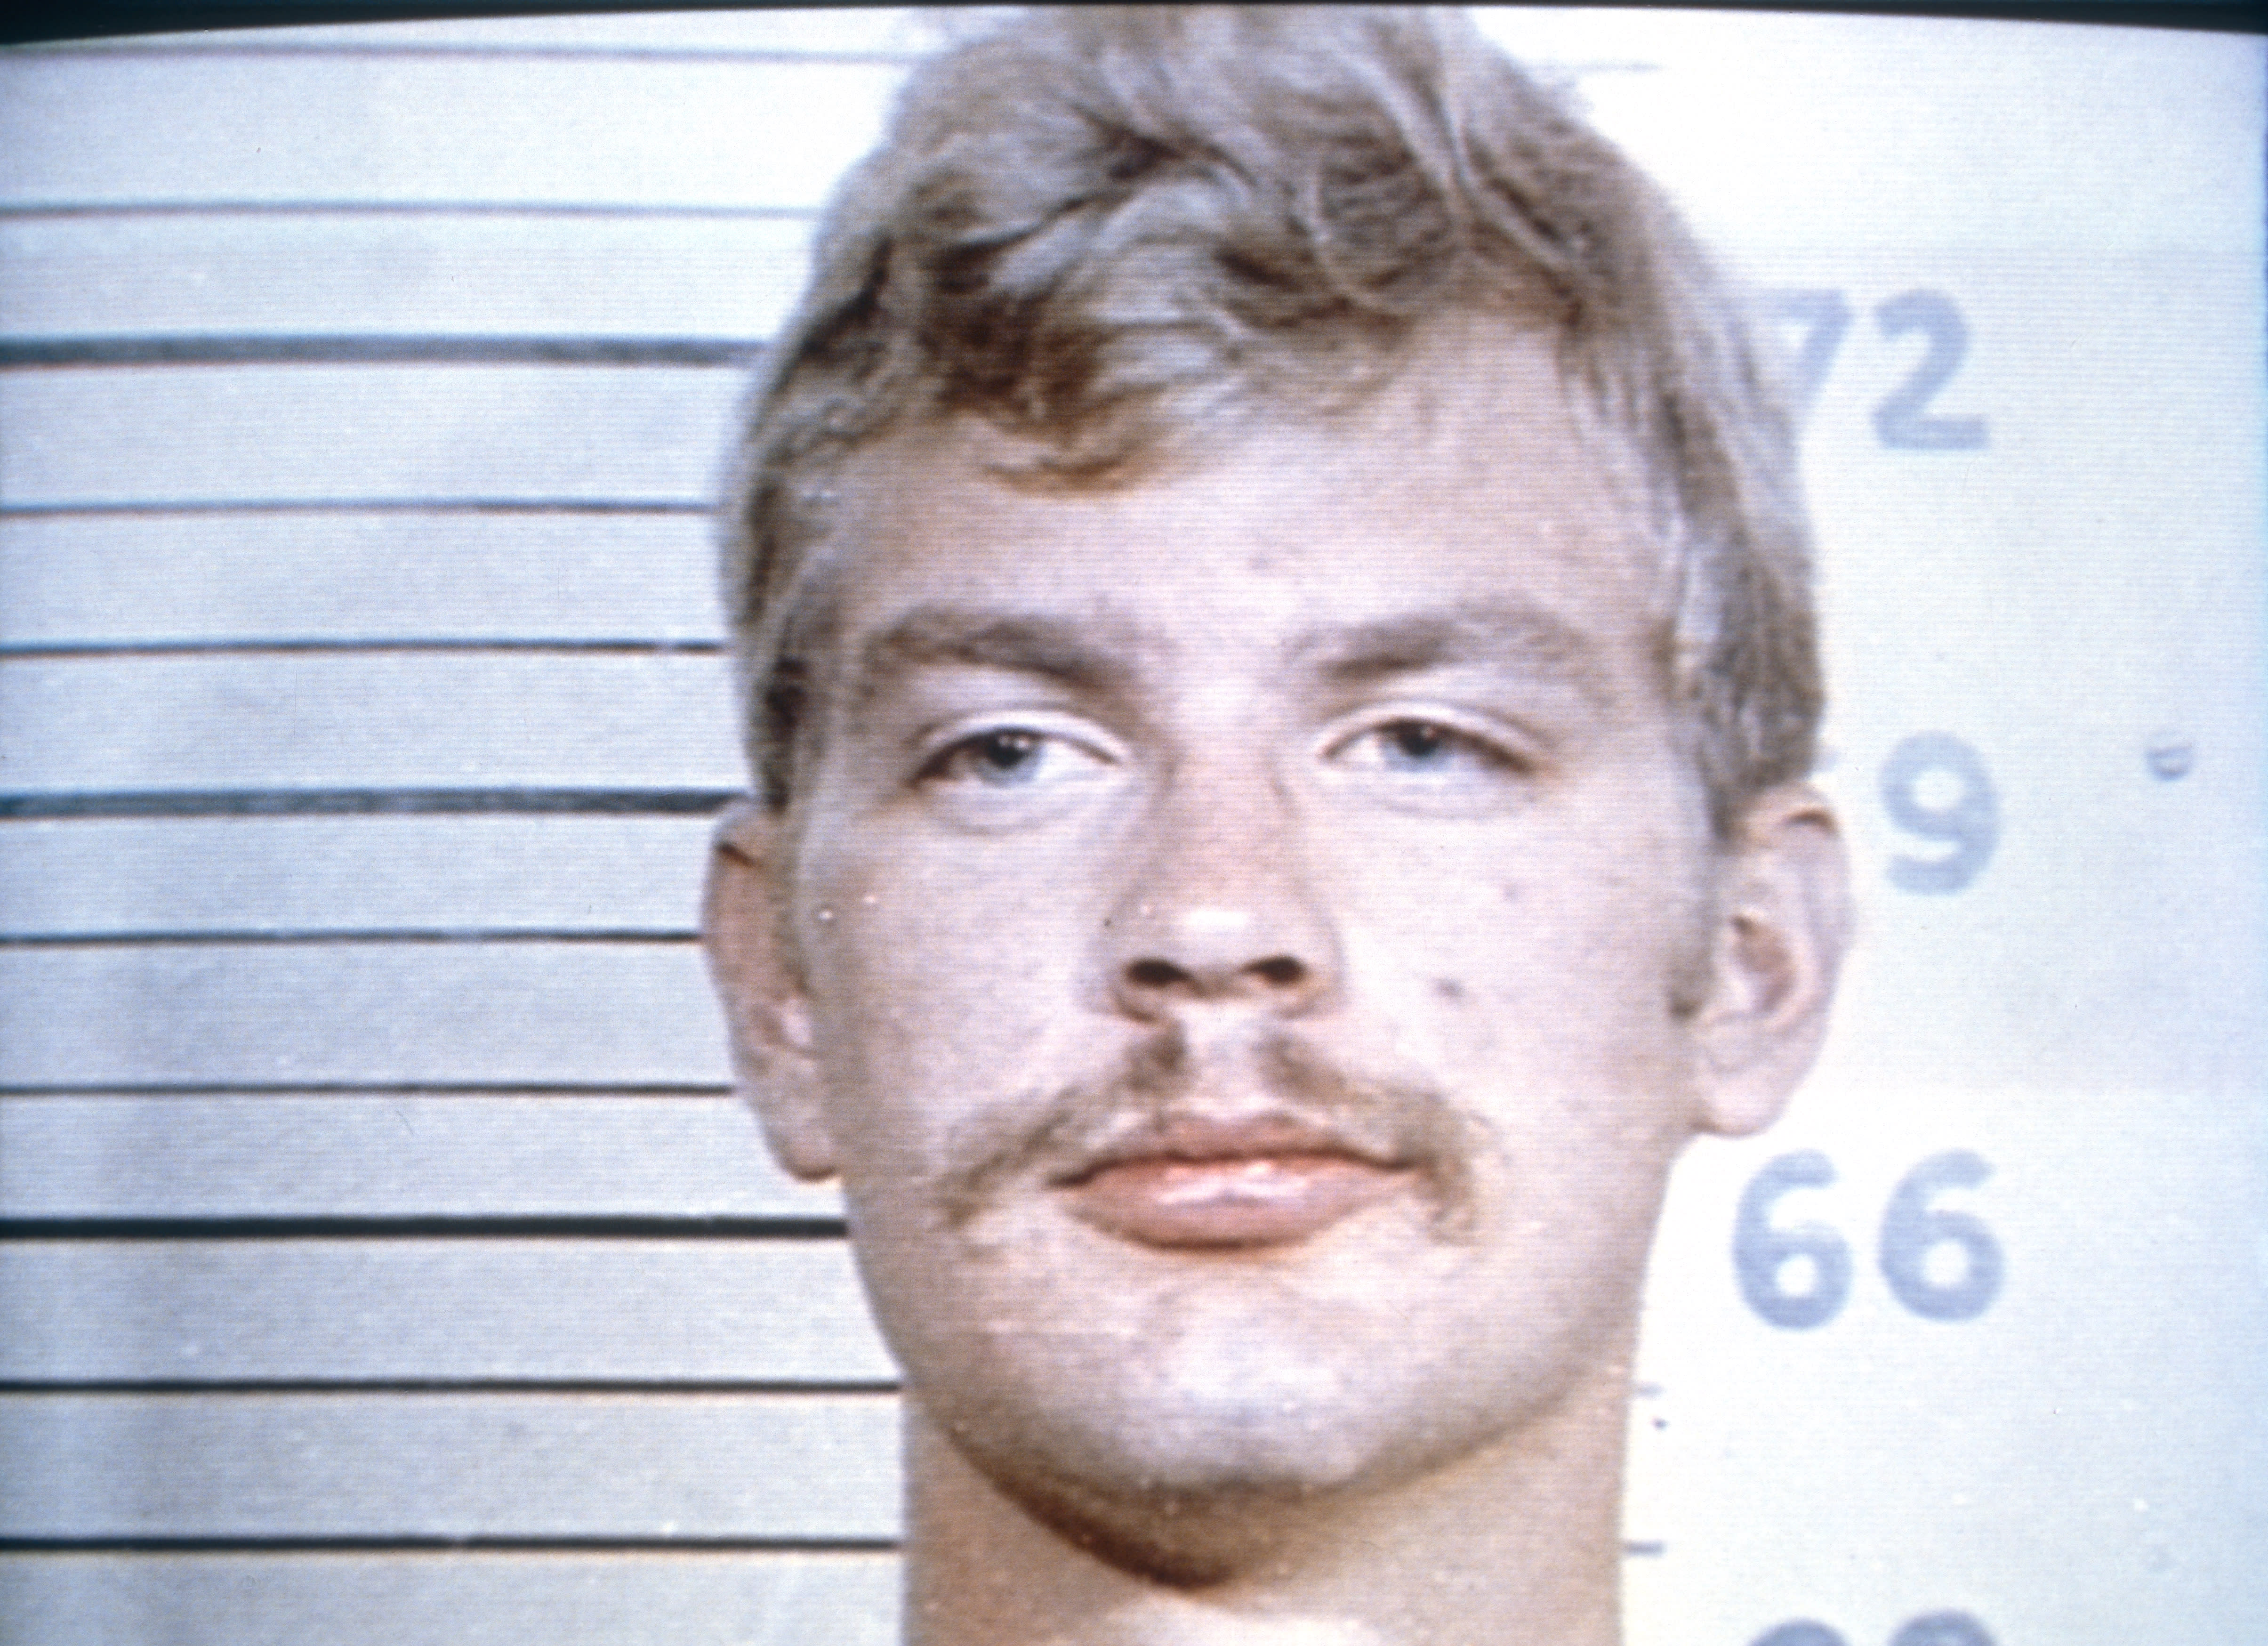 Serial killer Jeffrey Dahmer shown in a police mug shot from his 1982 arrest at the Wisconsin State Fair for indecent exposure. (Photo by Ralf-Finn Hestoft/Corbis via Getty Images)